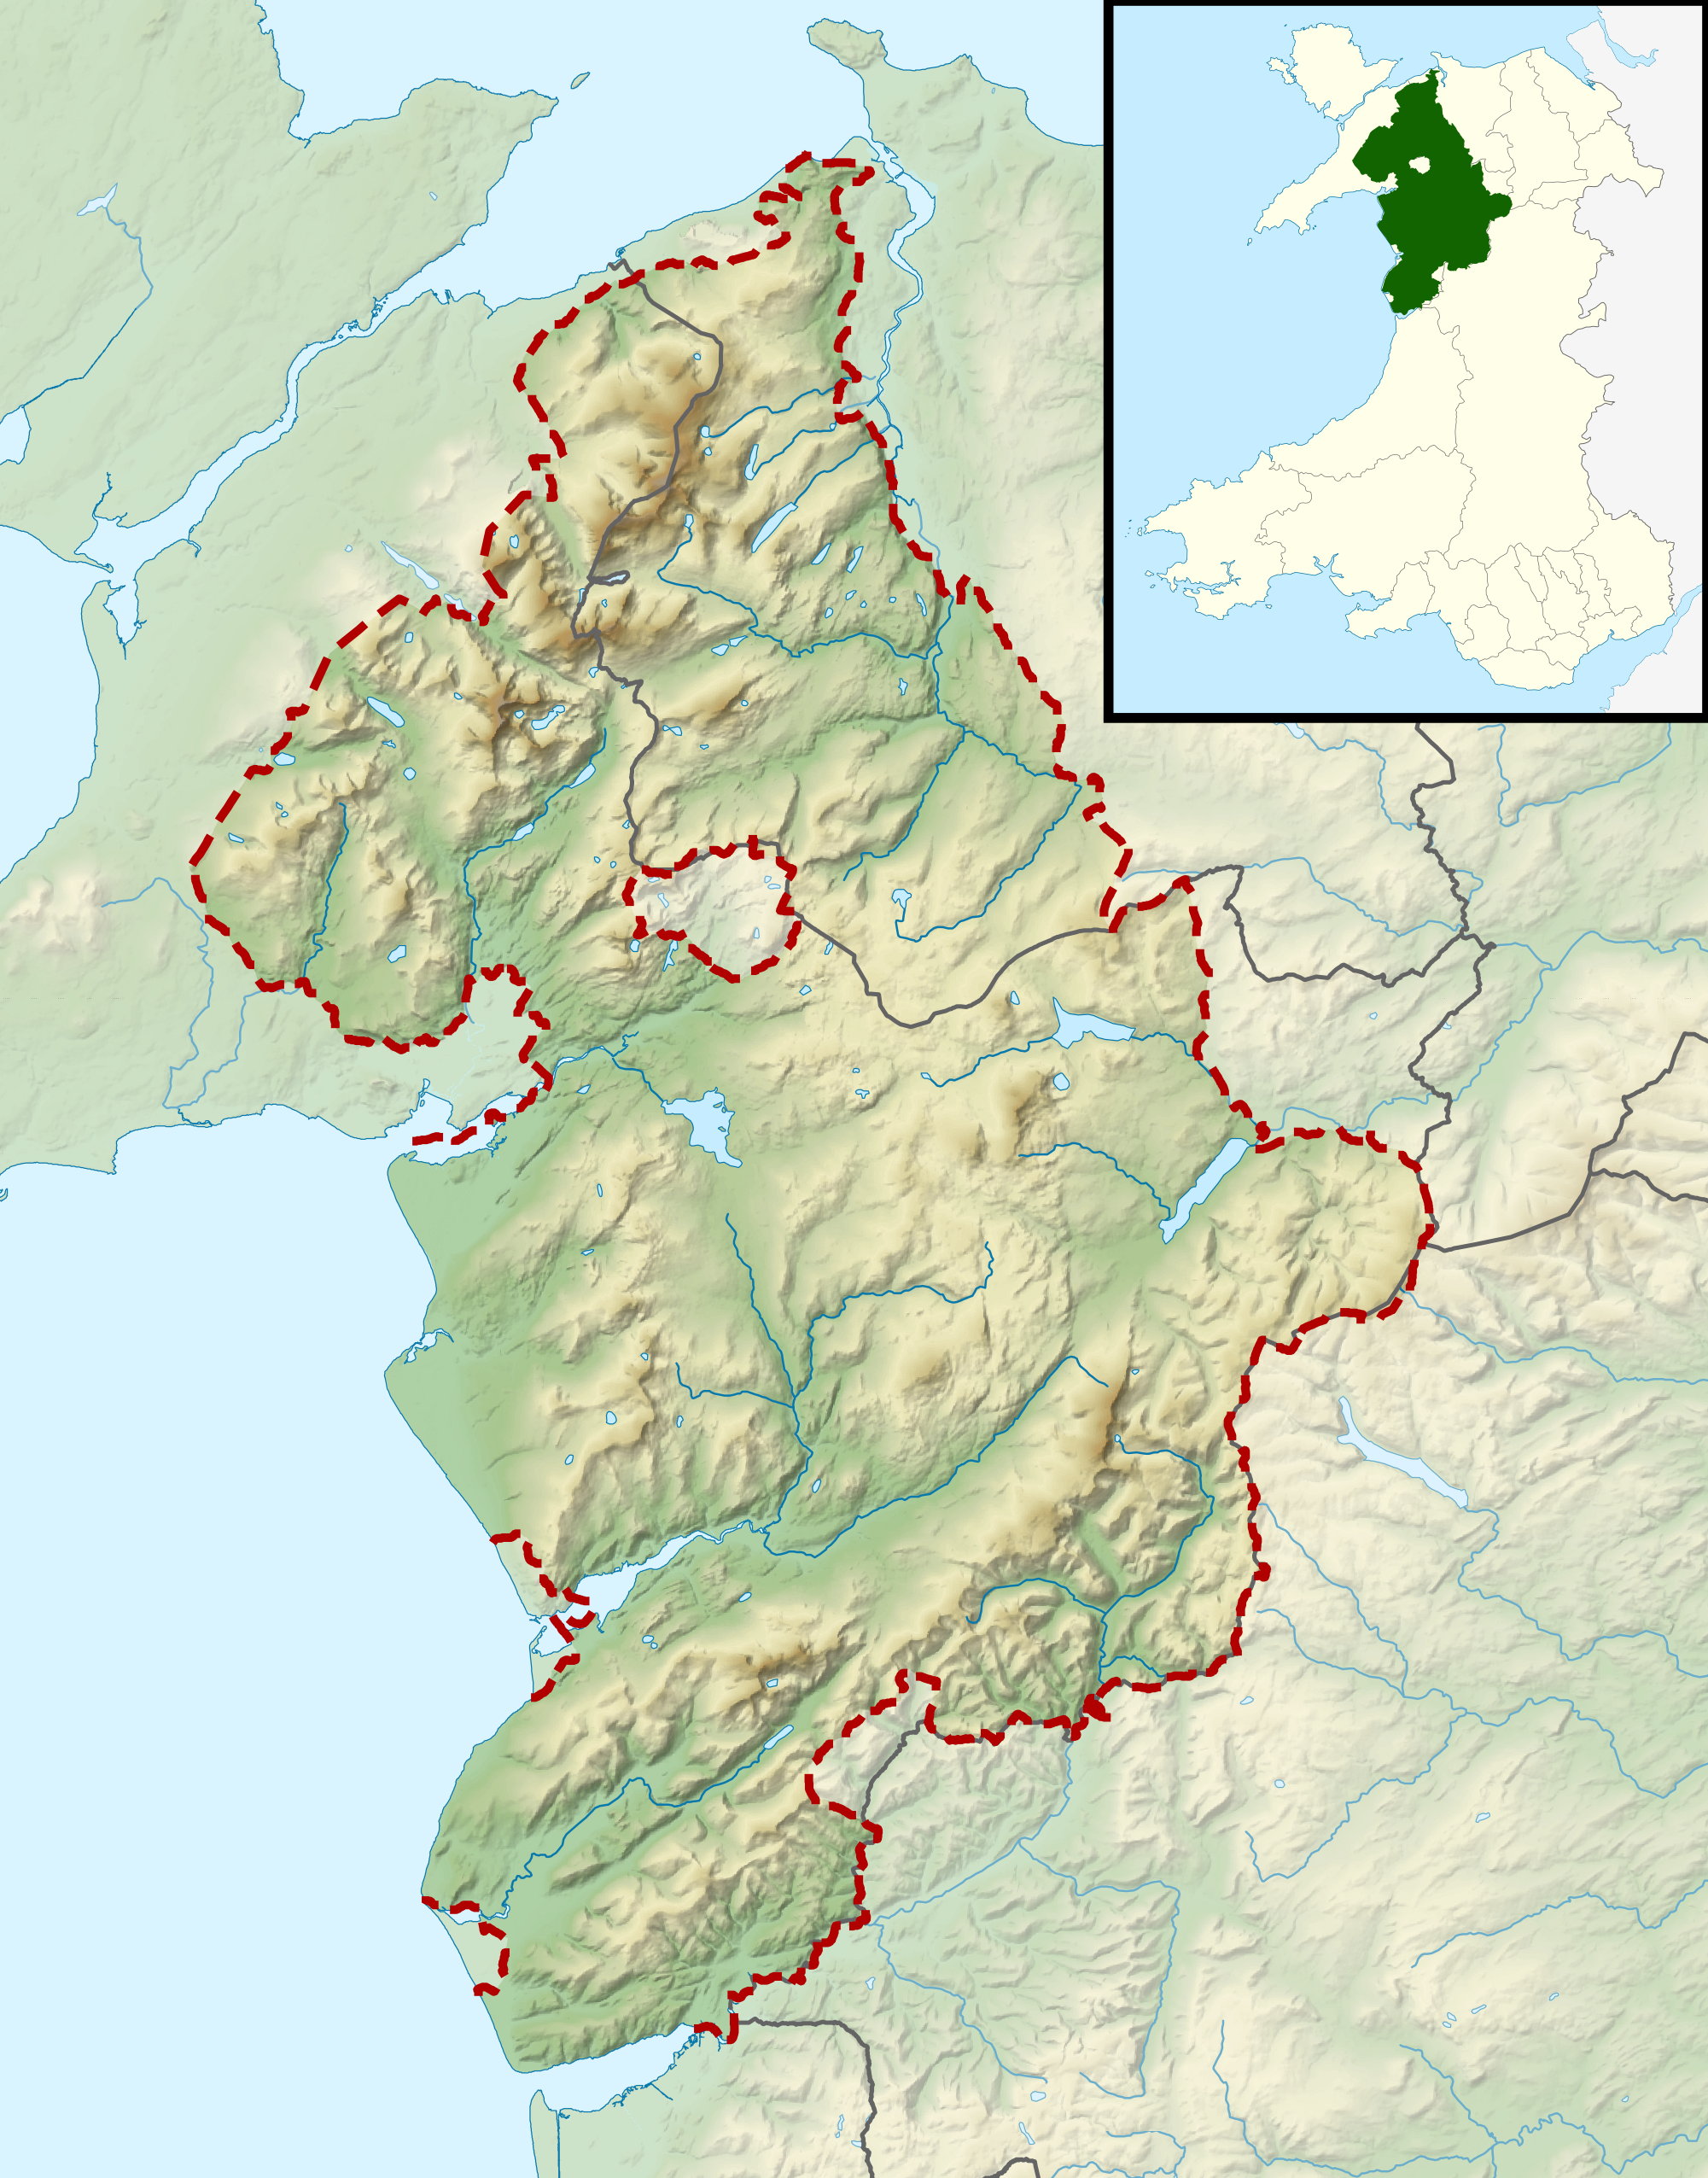 Snowdonia National Park Map File:Snowdonia National Park UK relief location map.png